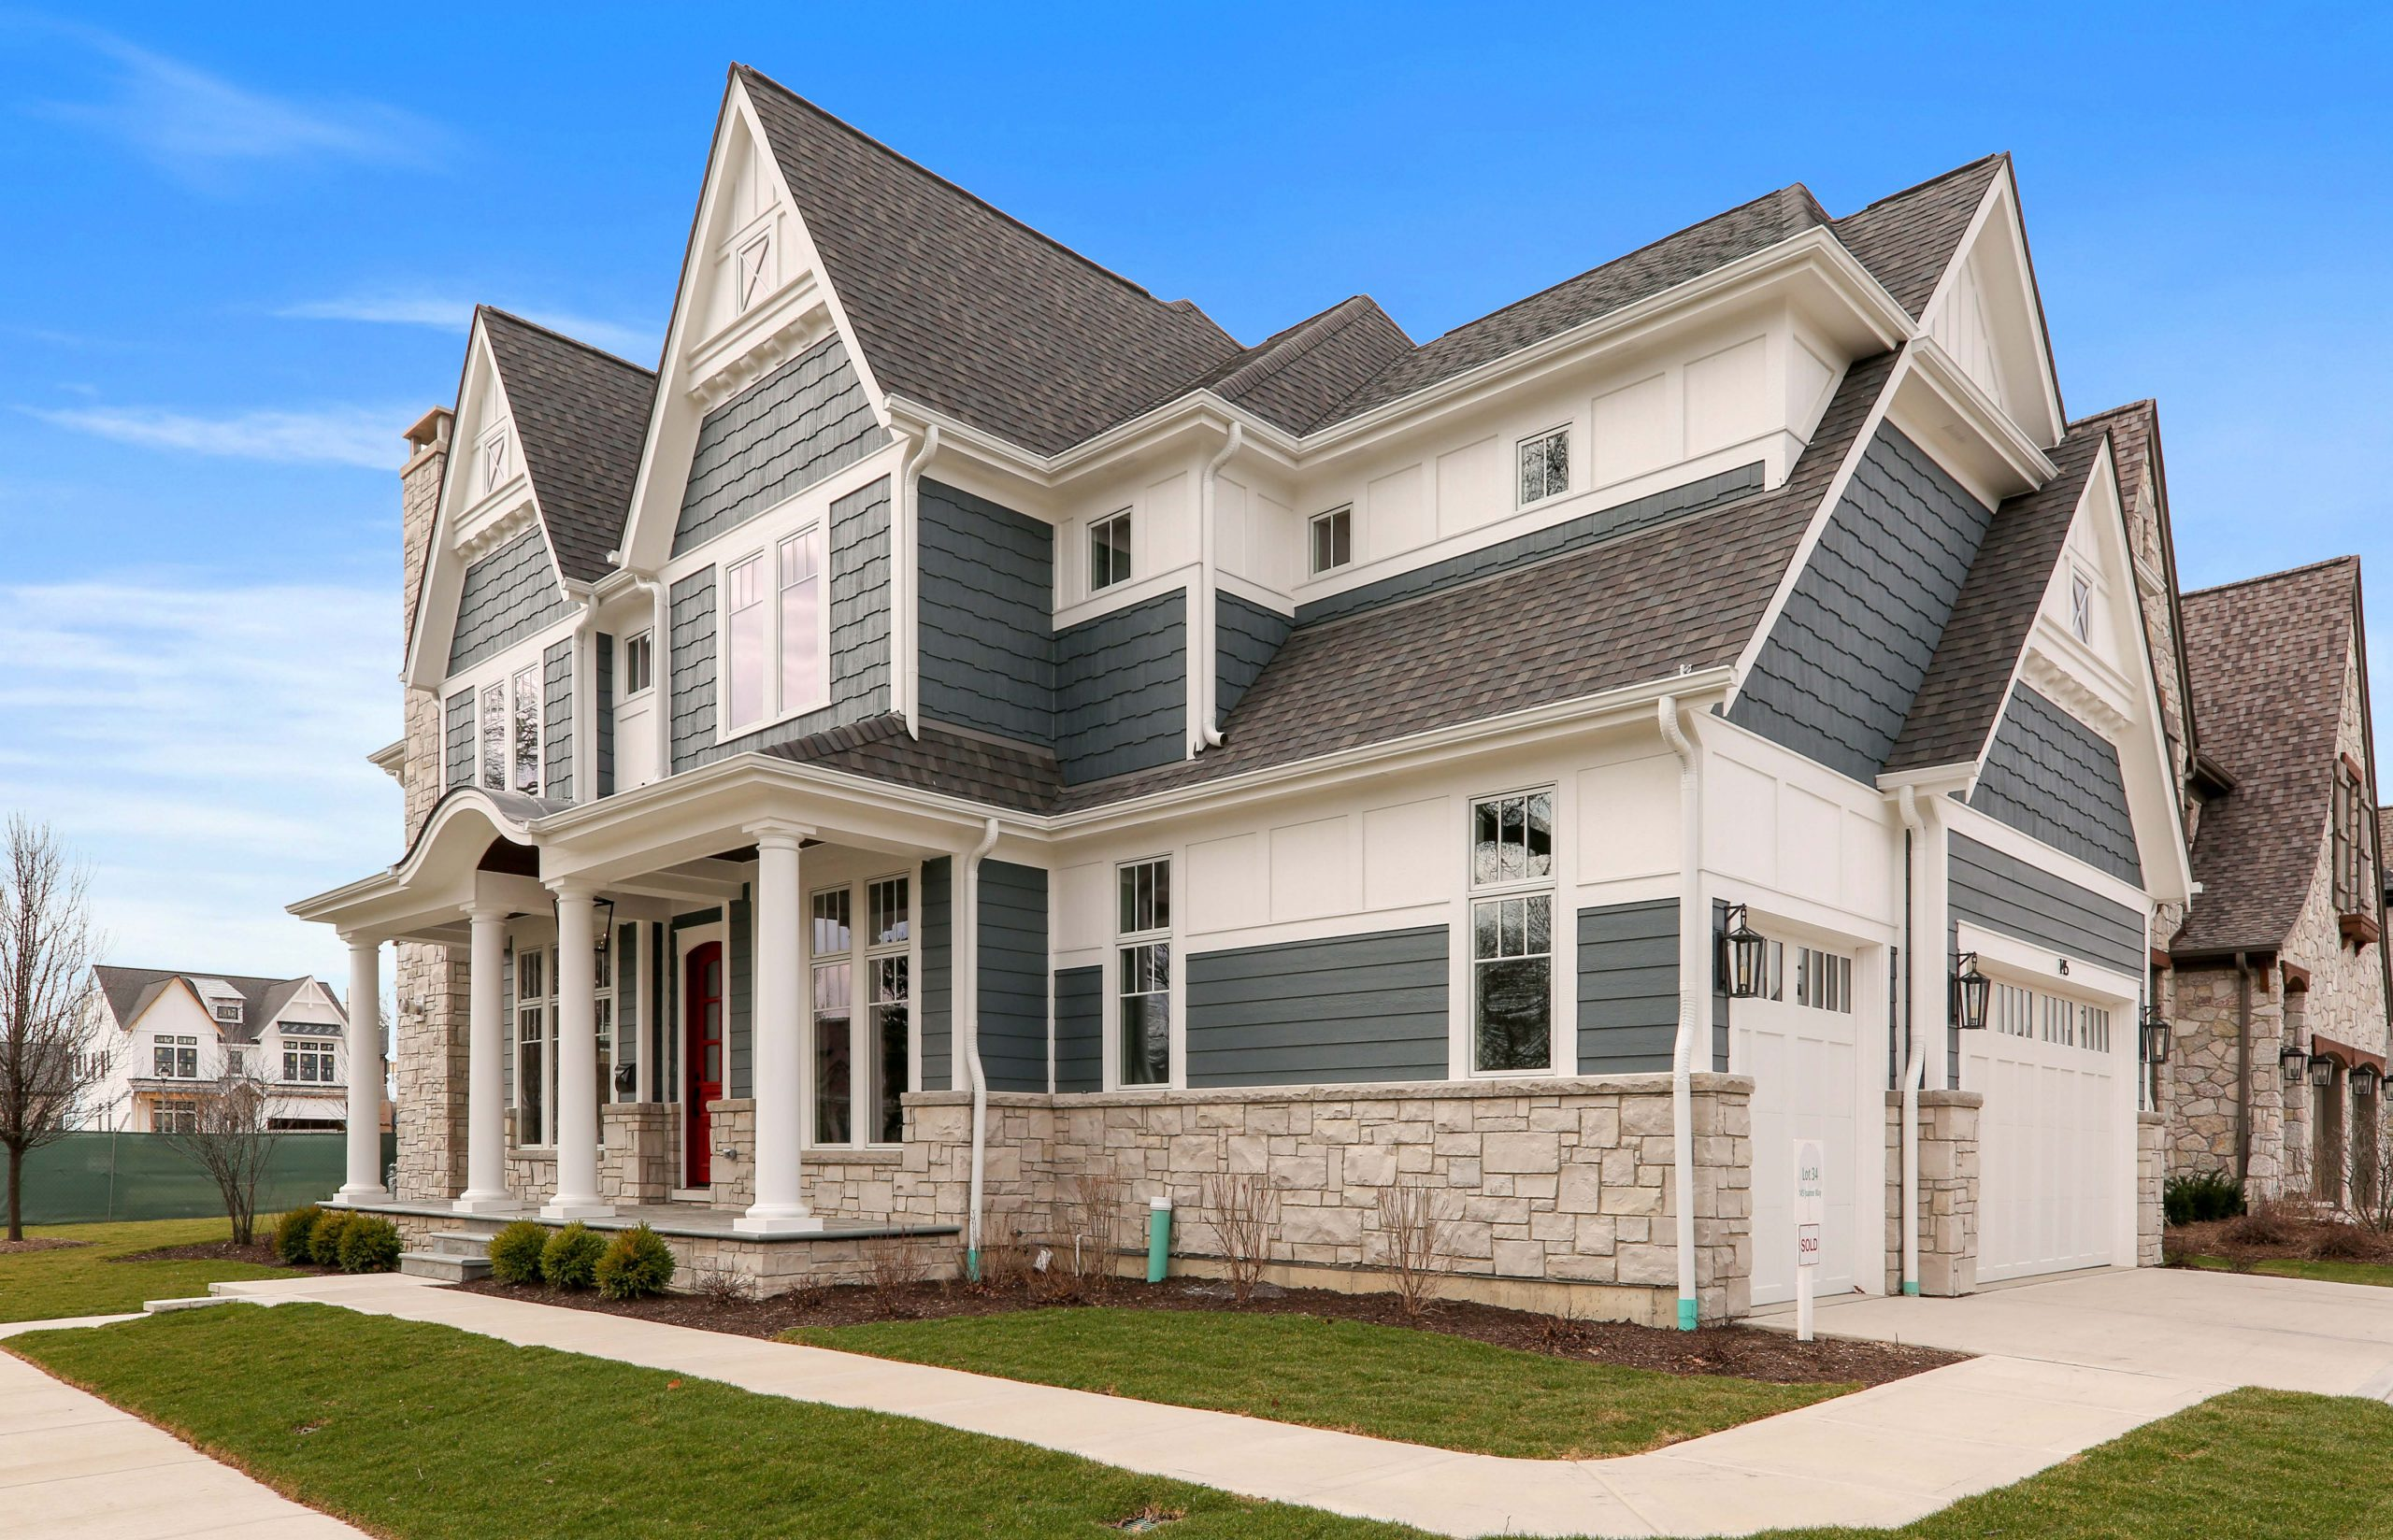 Blue vinyl siding with white wall paneling and trim. Round porch columns. Light tan stone veneer. Red fron door. Gray shingle roofing. White garage doors.